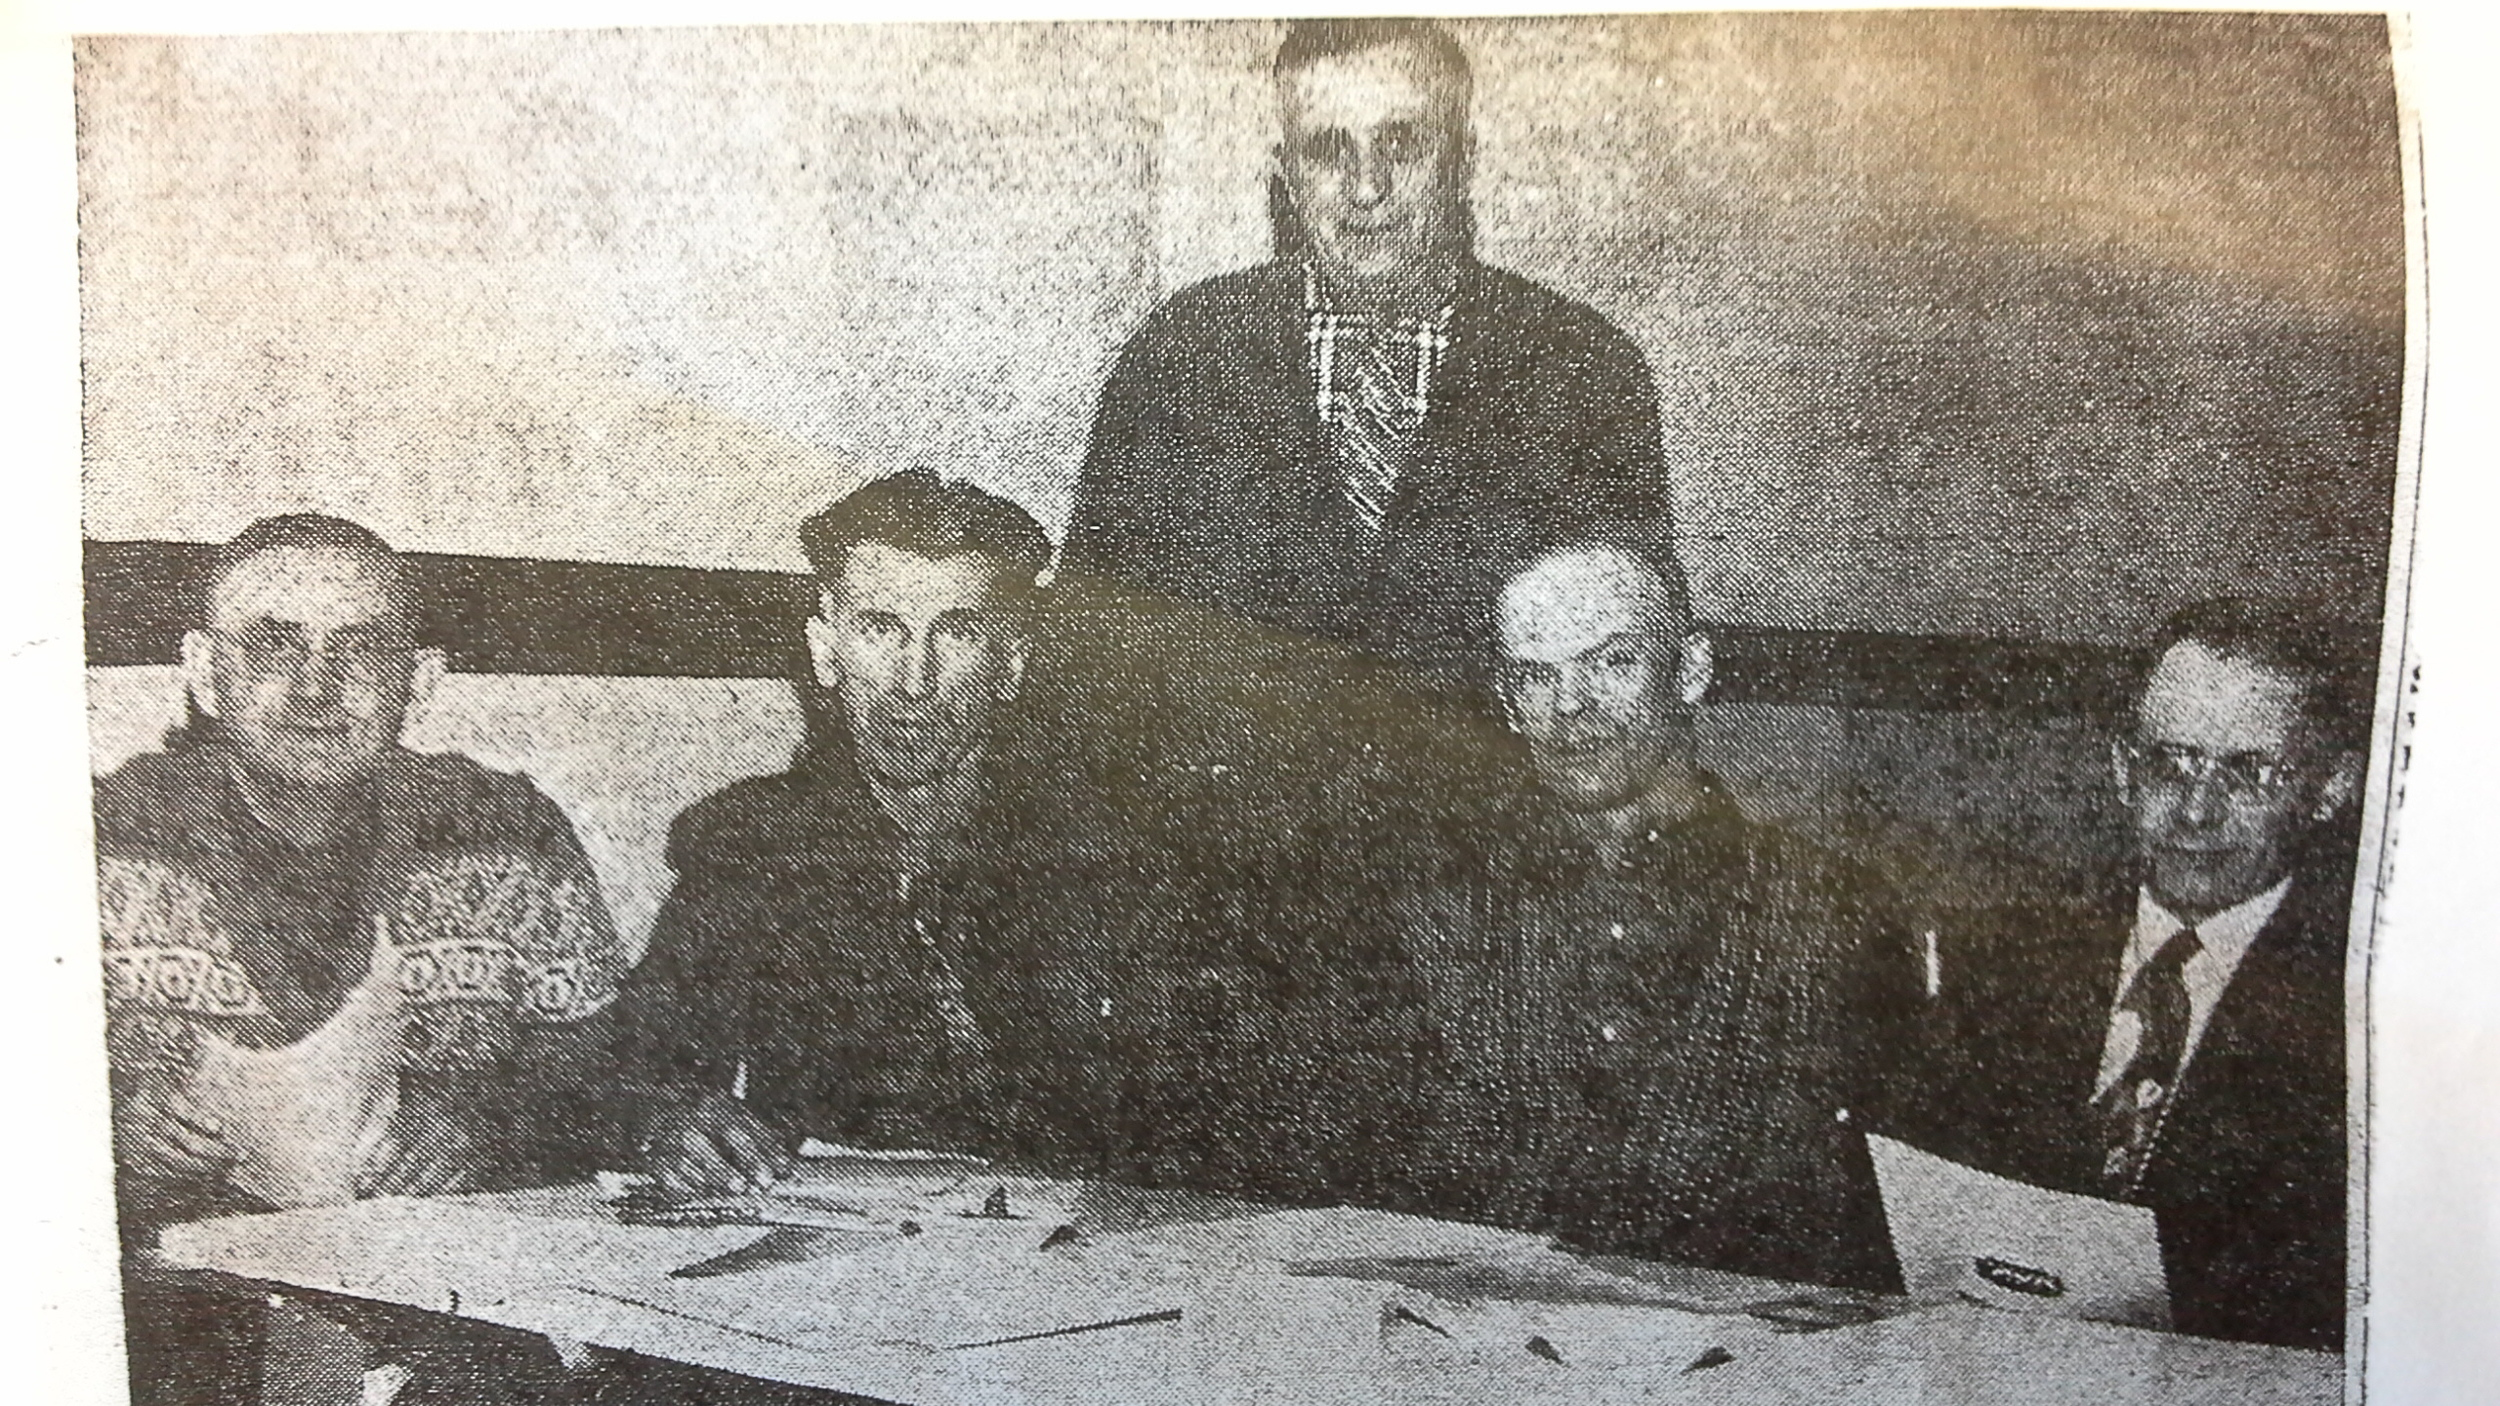 Weed inspectors who were hired to act in the ten new divisions that were formed in the war against weeds. The men are from left Malcom McDermit, Pierson; John Lowen, Mather; George Wintle, Deloraine; Claude Bomford, Crandall; Arthur Smith, Reston.